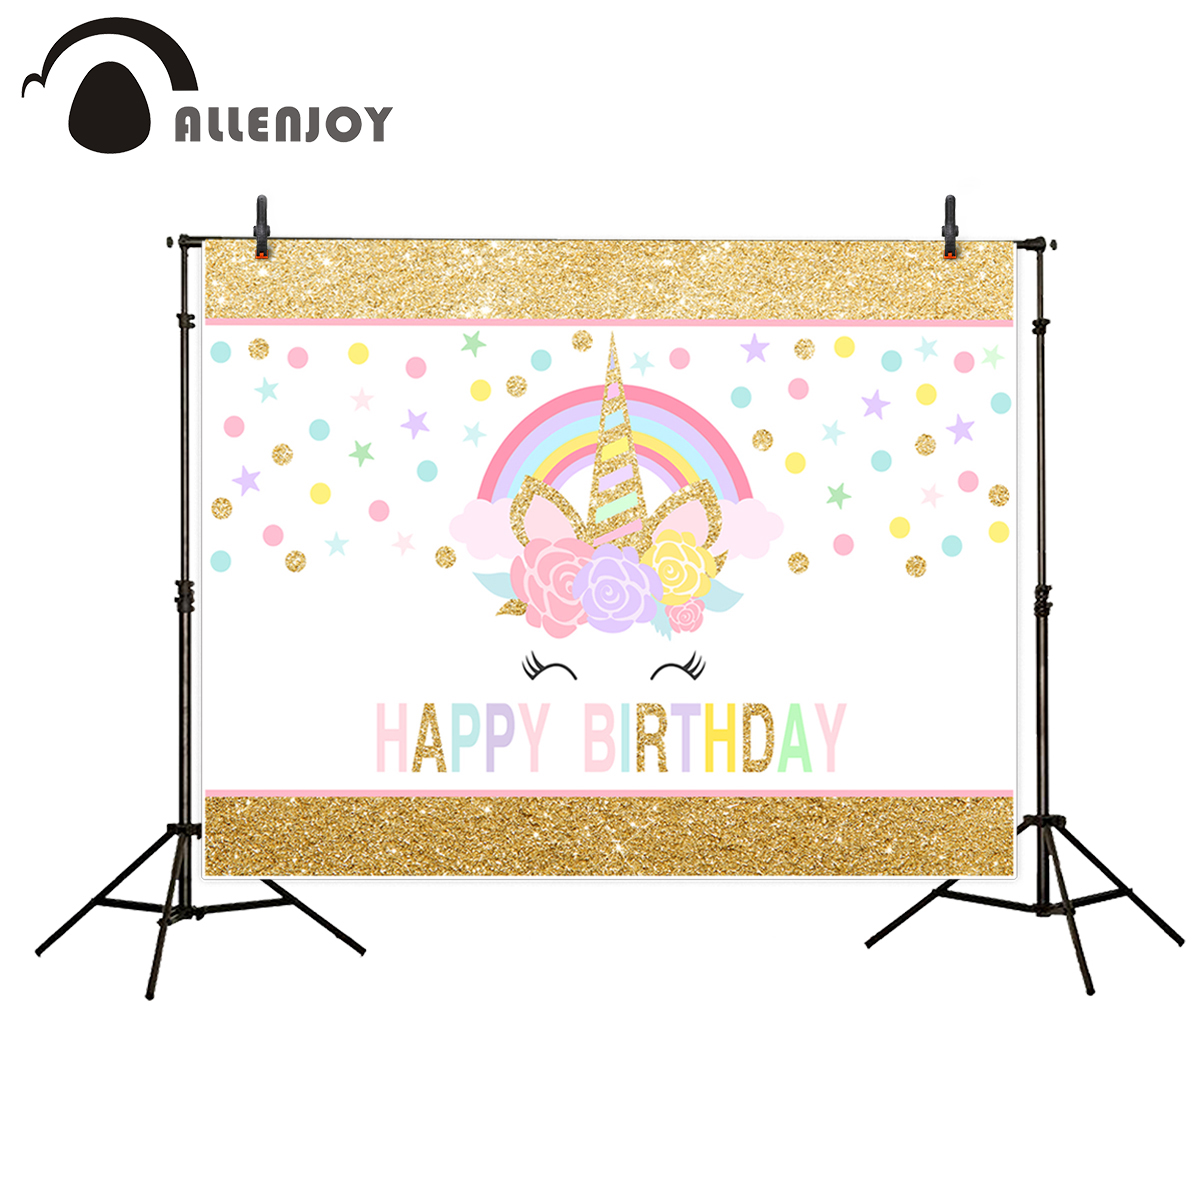 Allenjoy photography backdrop colorful unicorn birthday sweet luxury background photo studio fantasy prop printed professional fabric birthday party backdrop balloon and paper craft photography backdrop for photo studio photography background s 2132 c